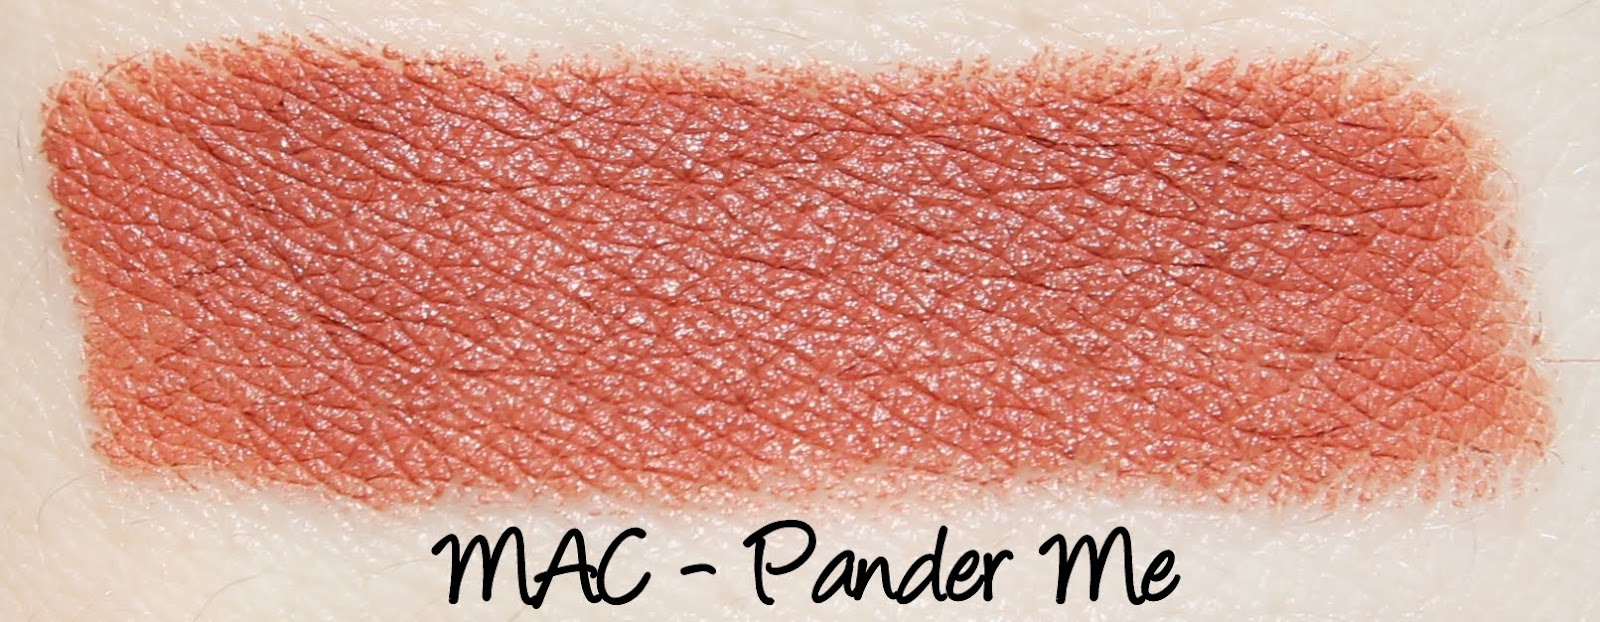 MAC Pander Me Lipstick Swatches & Review